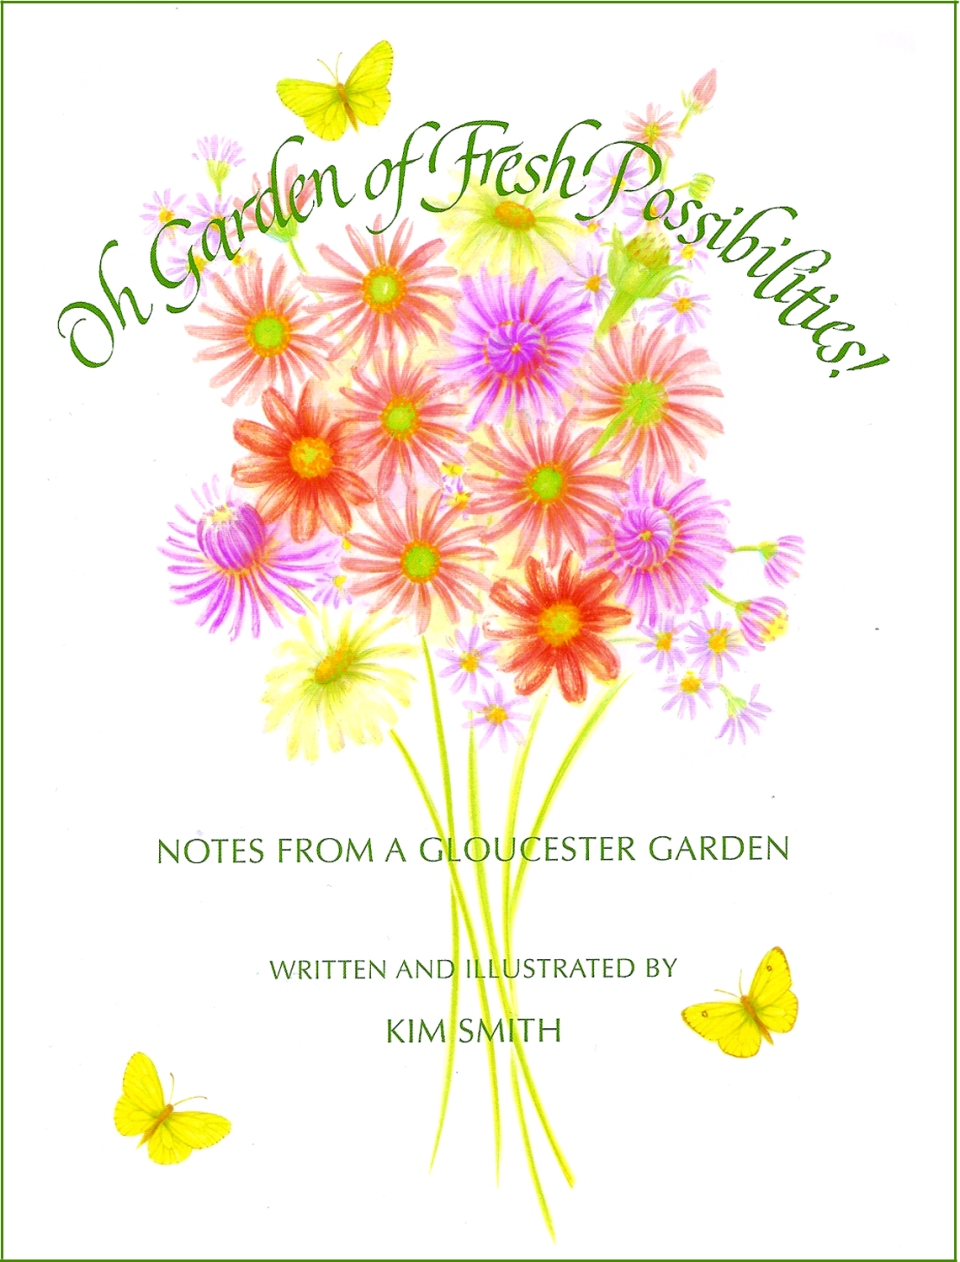 Oh Garden of Fresh Possibilities! Kim Smith